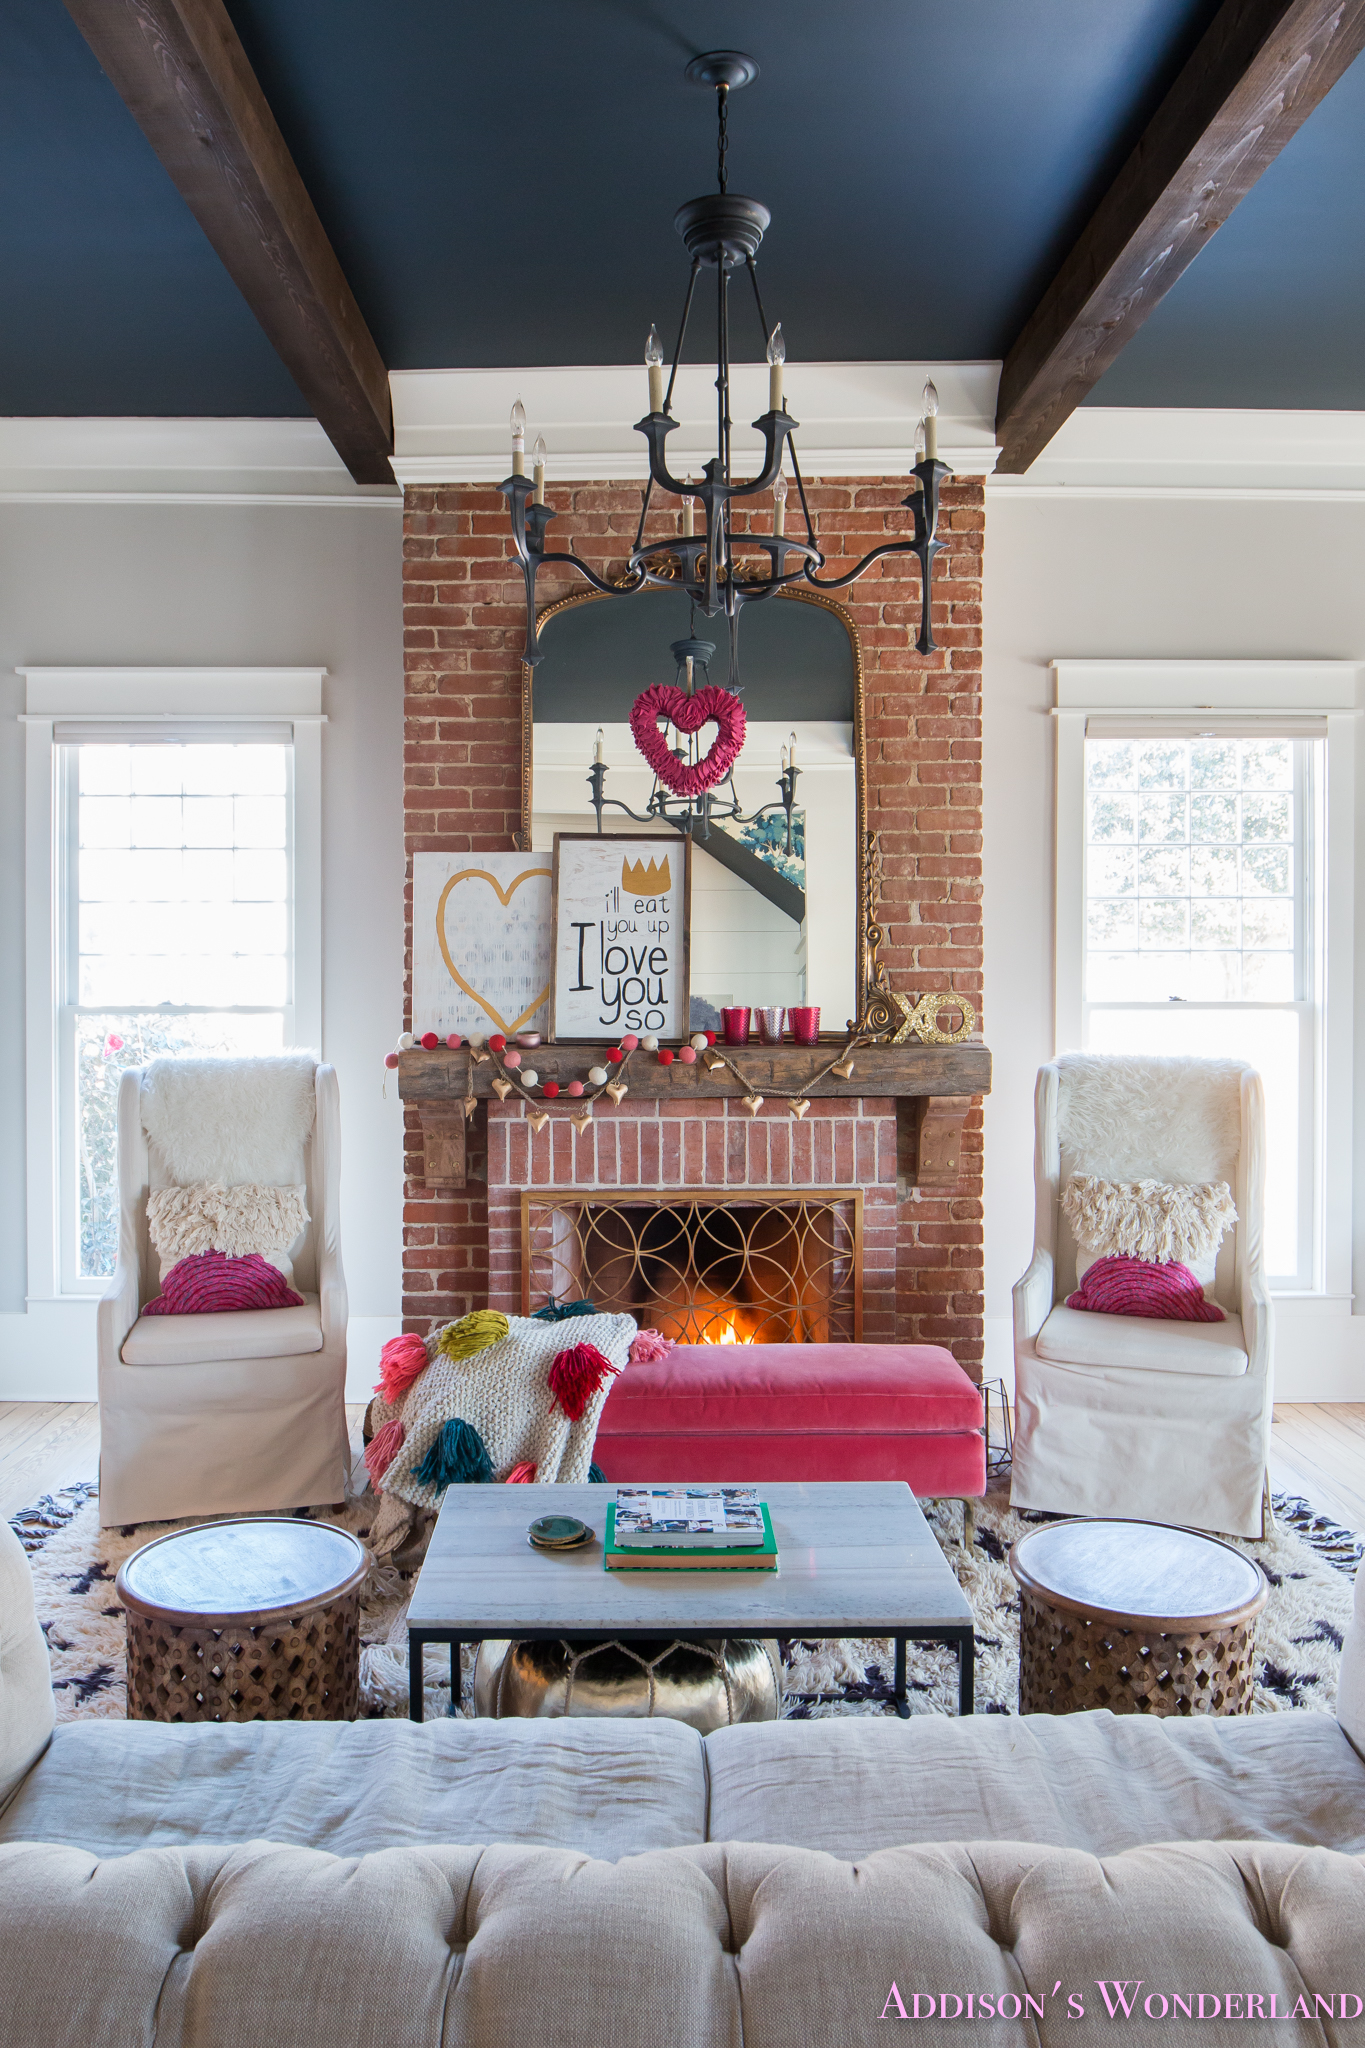 Living Room Decoration: Our Colorful, Whimsical & Elegant Valentine's Day Living